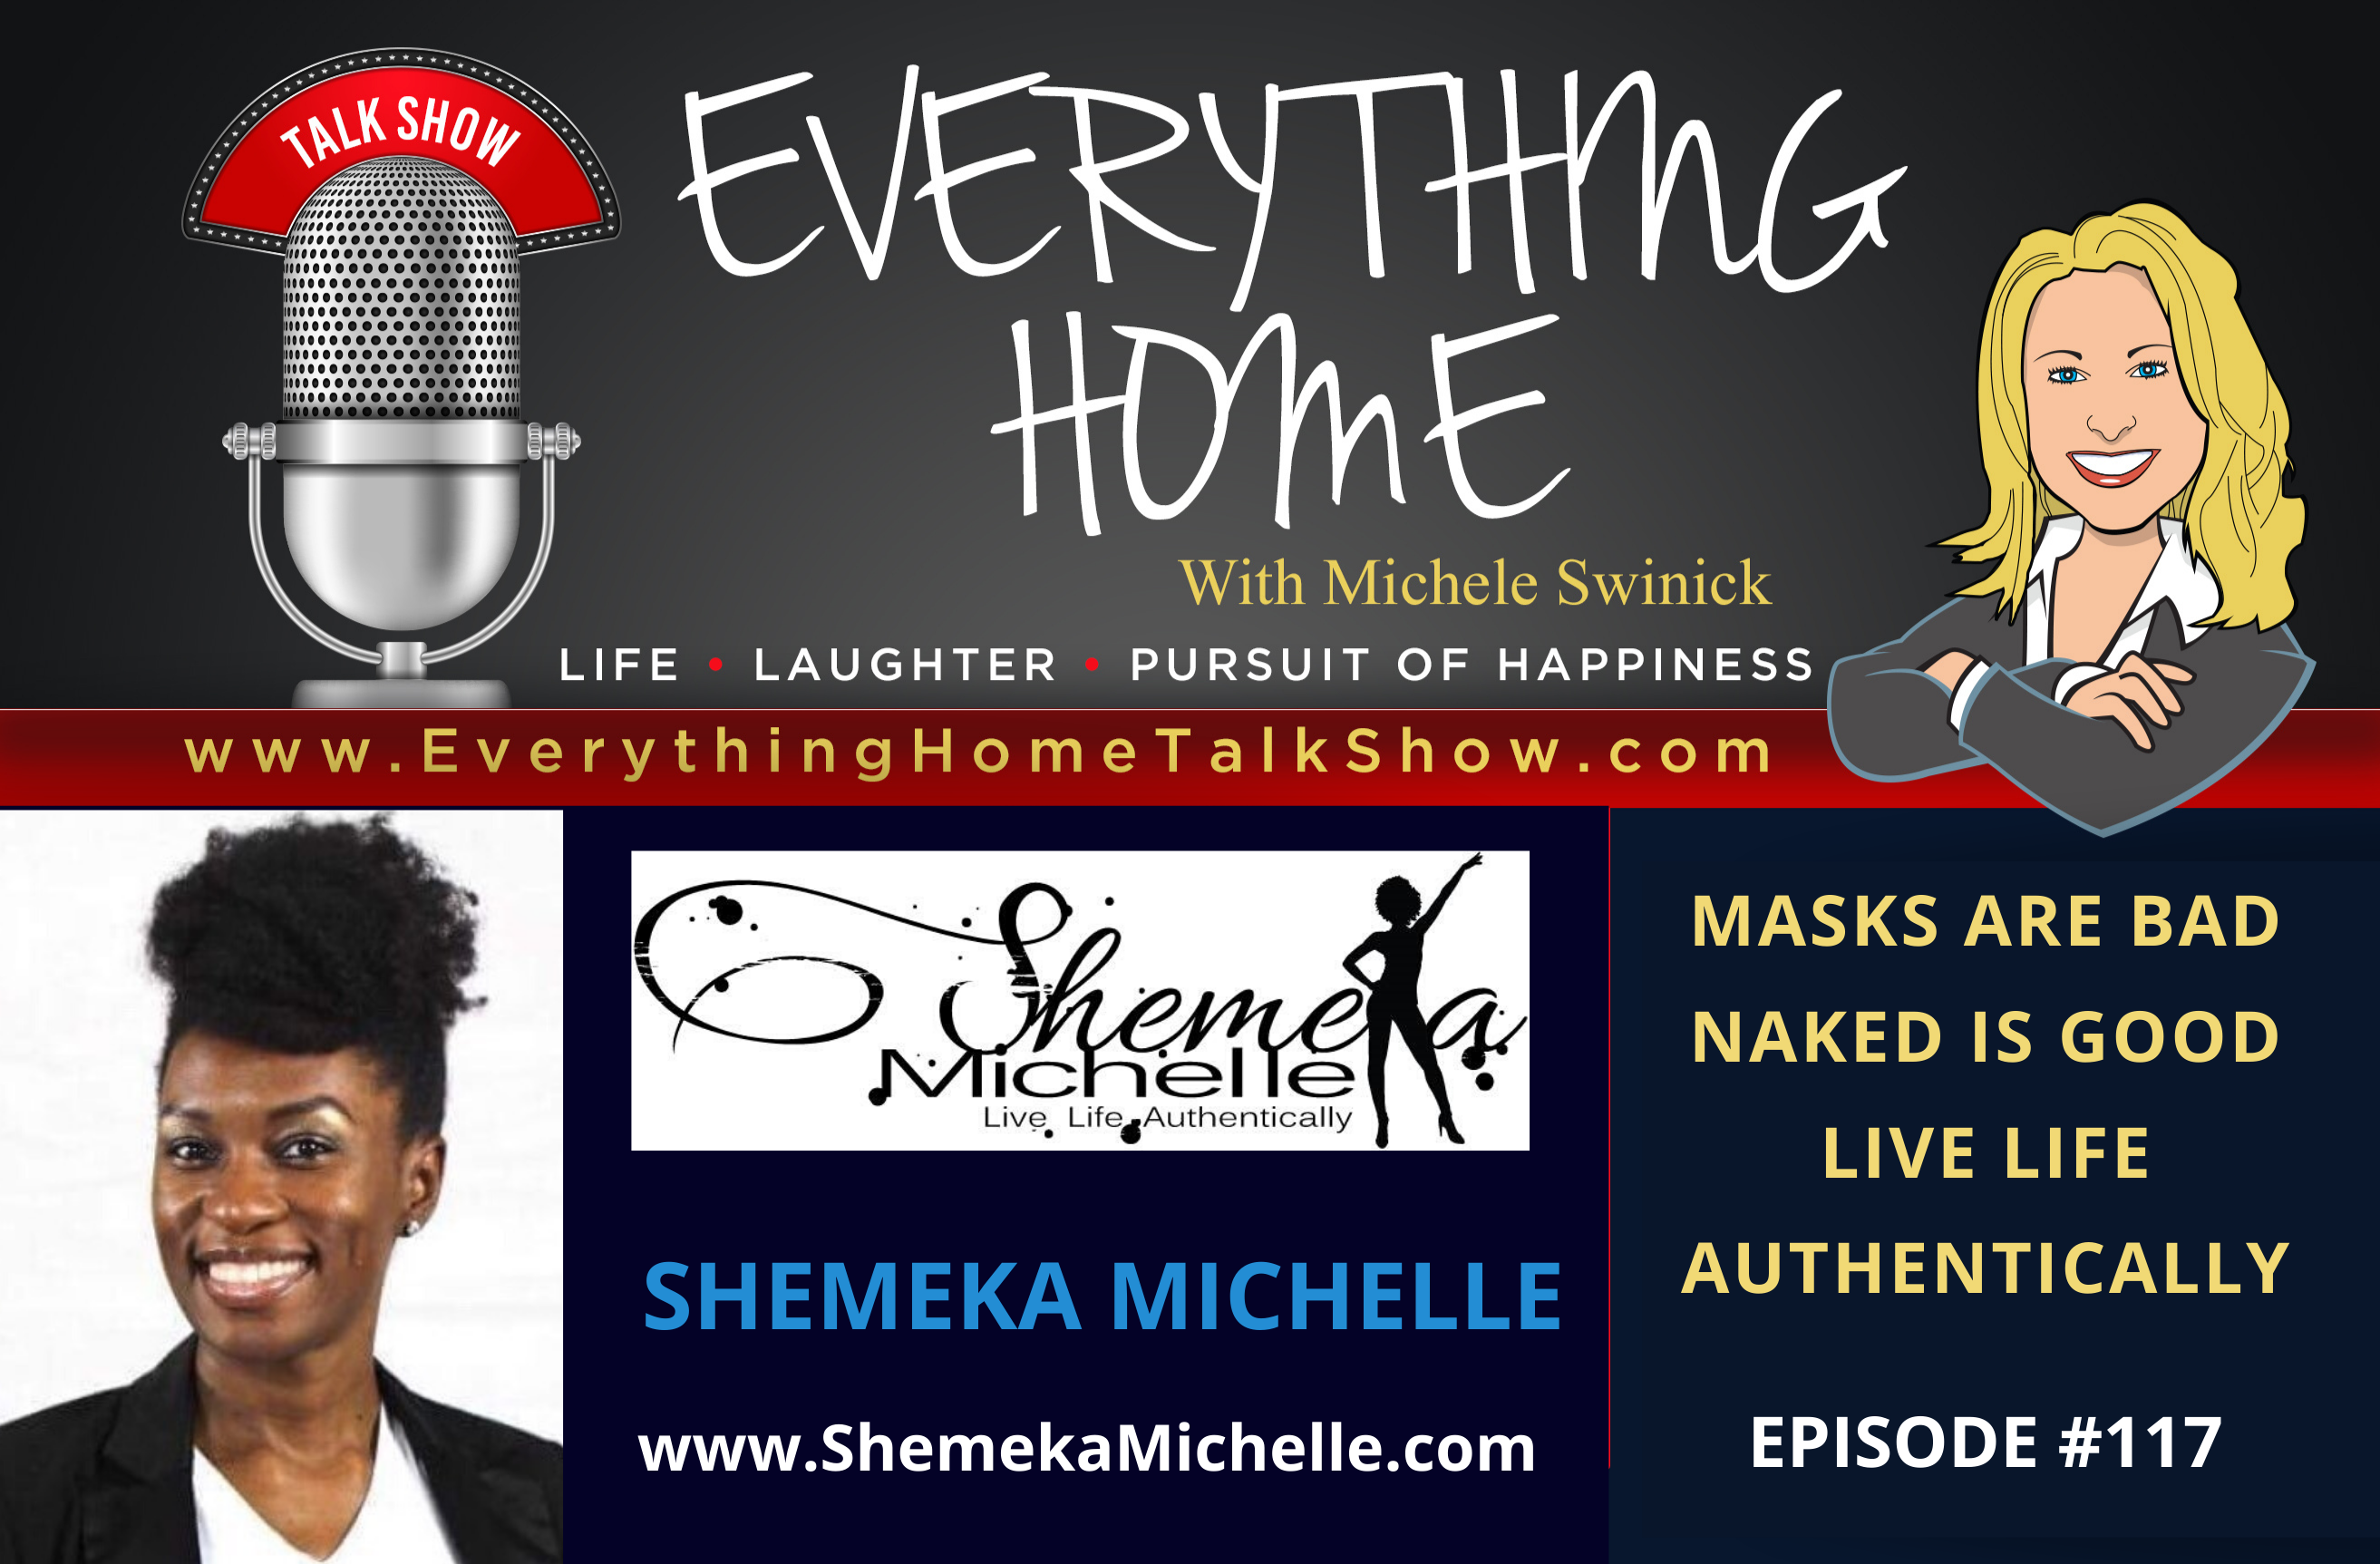 #117 - Masks Are Bad But Living Emotionally Naked Is Good With Shemeka Michelle